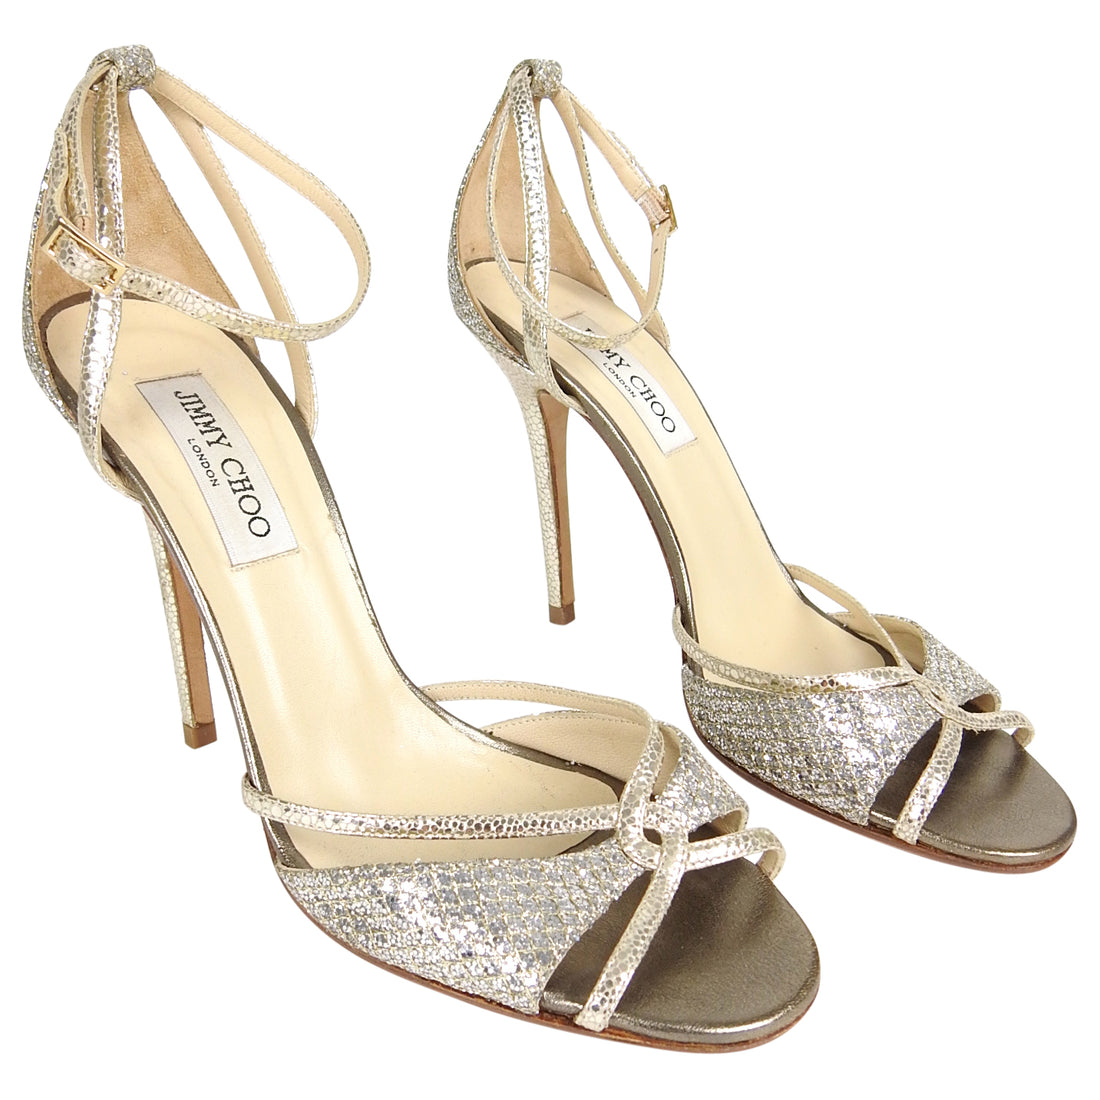 Jimmy Choo Silver Glitter and Gold Mesh Strappy Sandals - 39.5